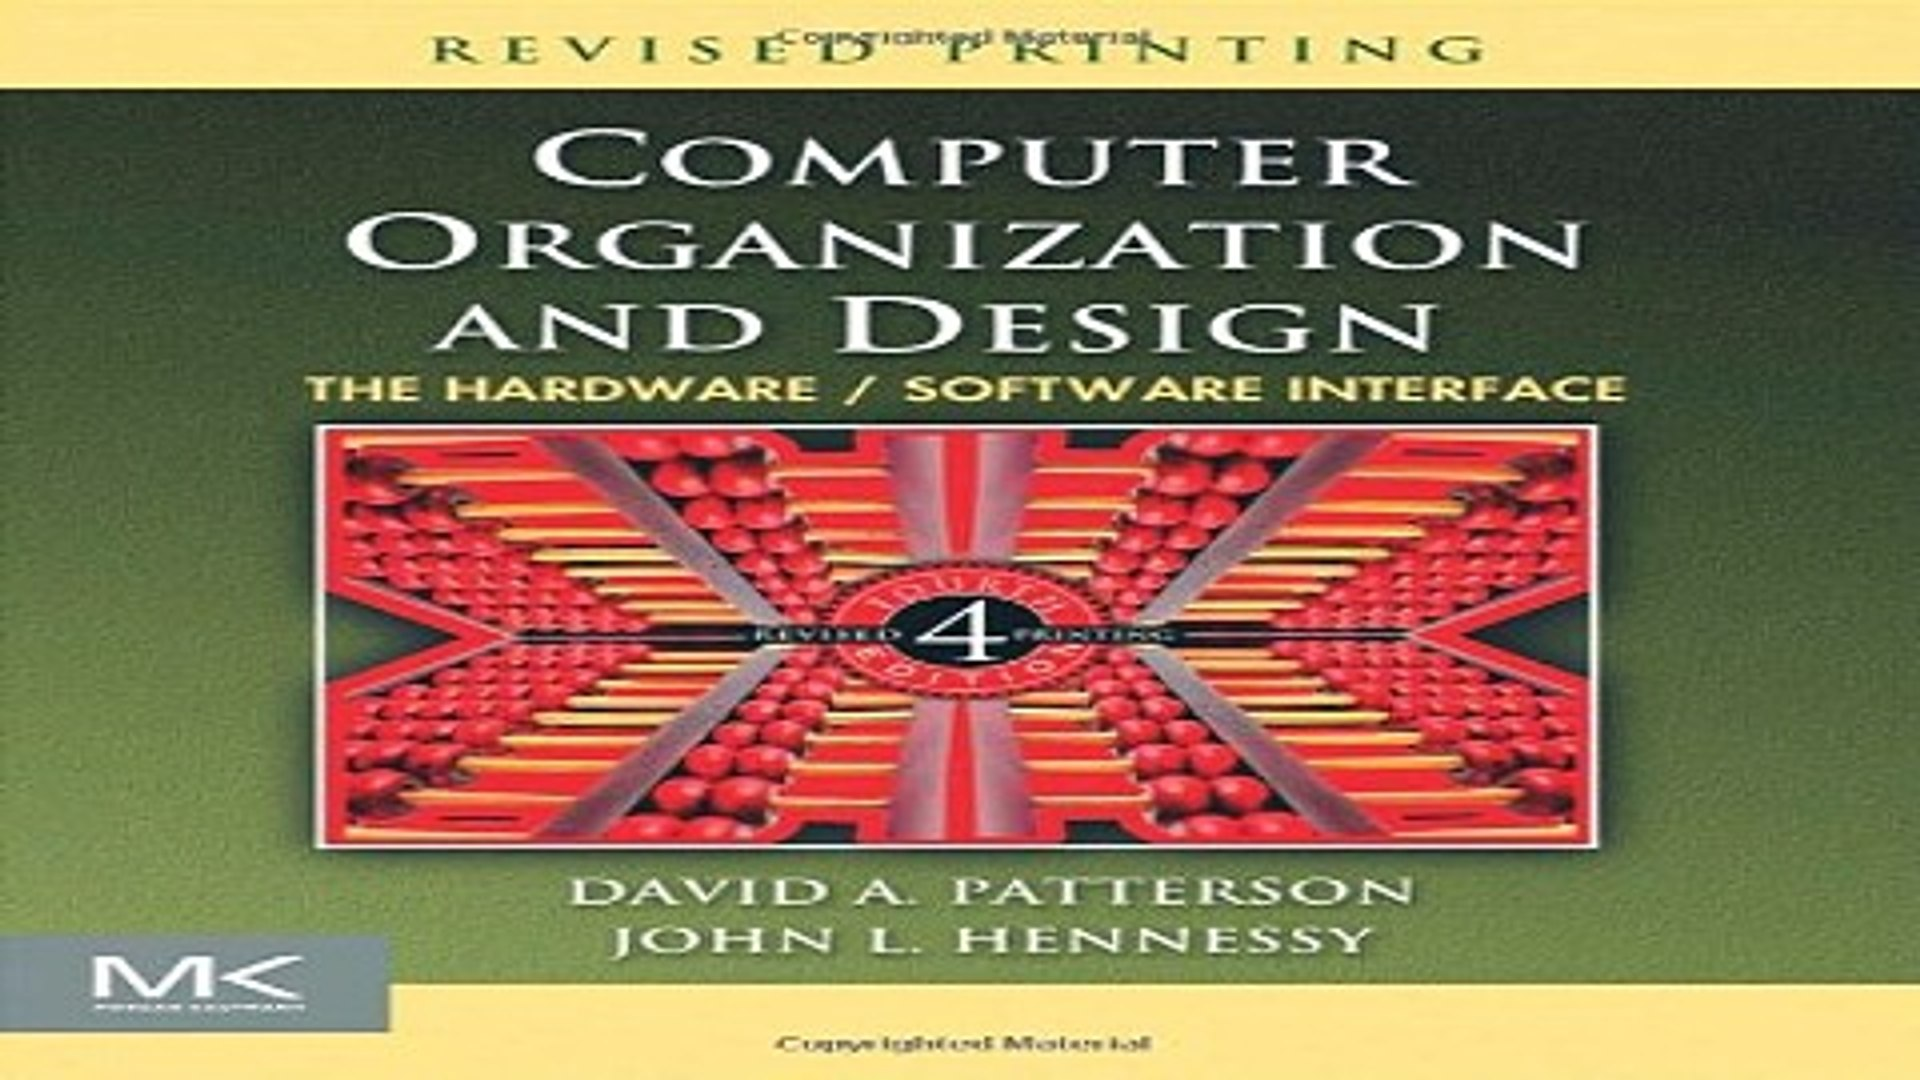 Read Computer Organization And Design Fourth Edition The Hardware Software Interface The Morgan Video Dailymotion